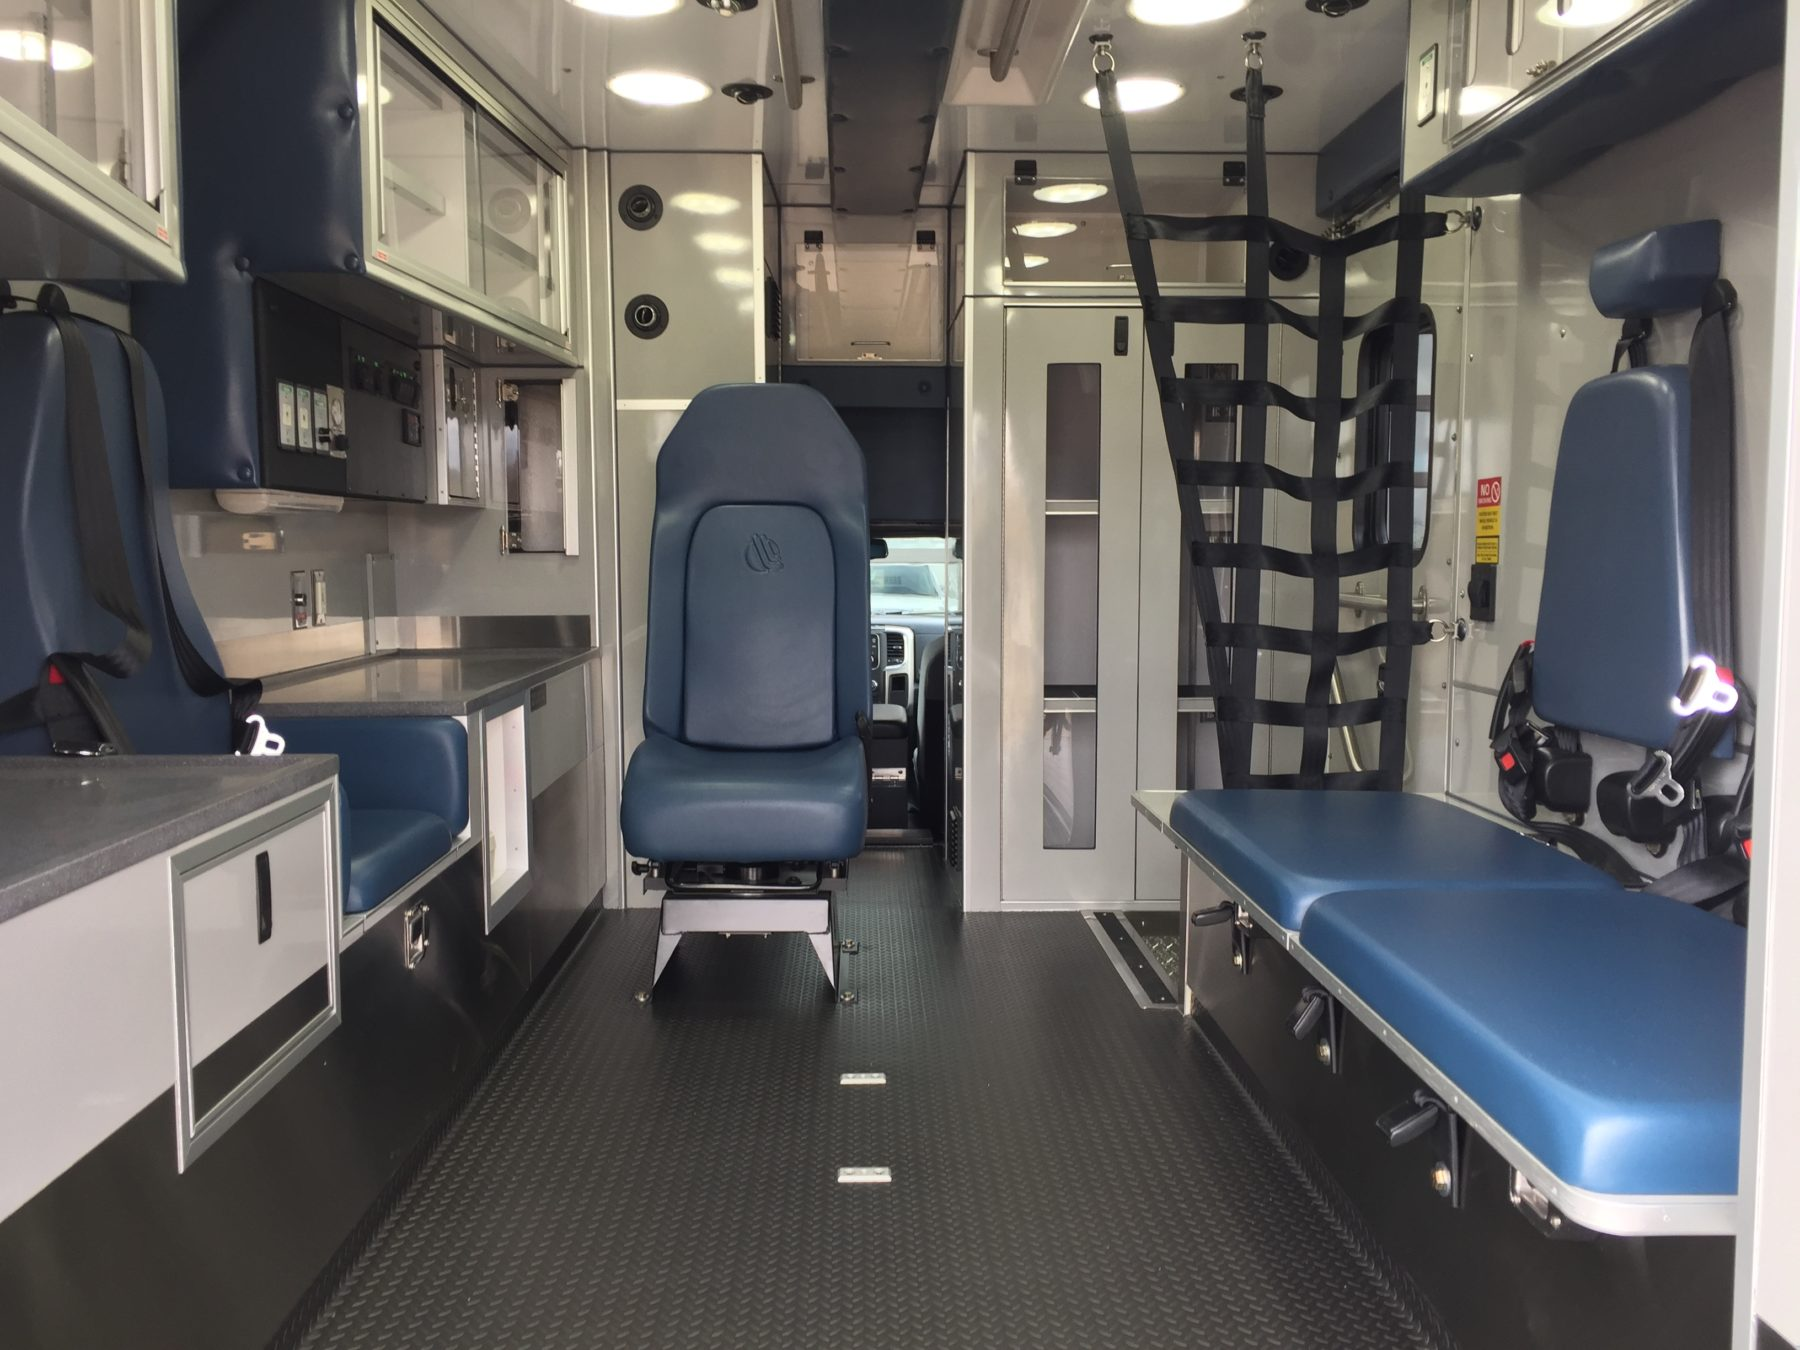 2017 Ram 4500 4x4 Heavy Duty Ambulance For Sale – Picture 2